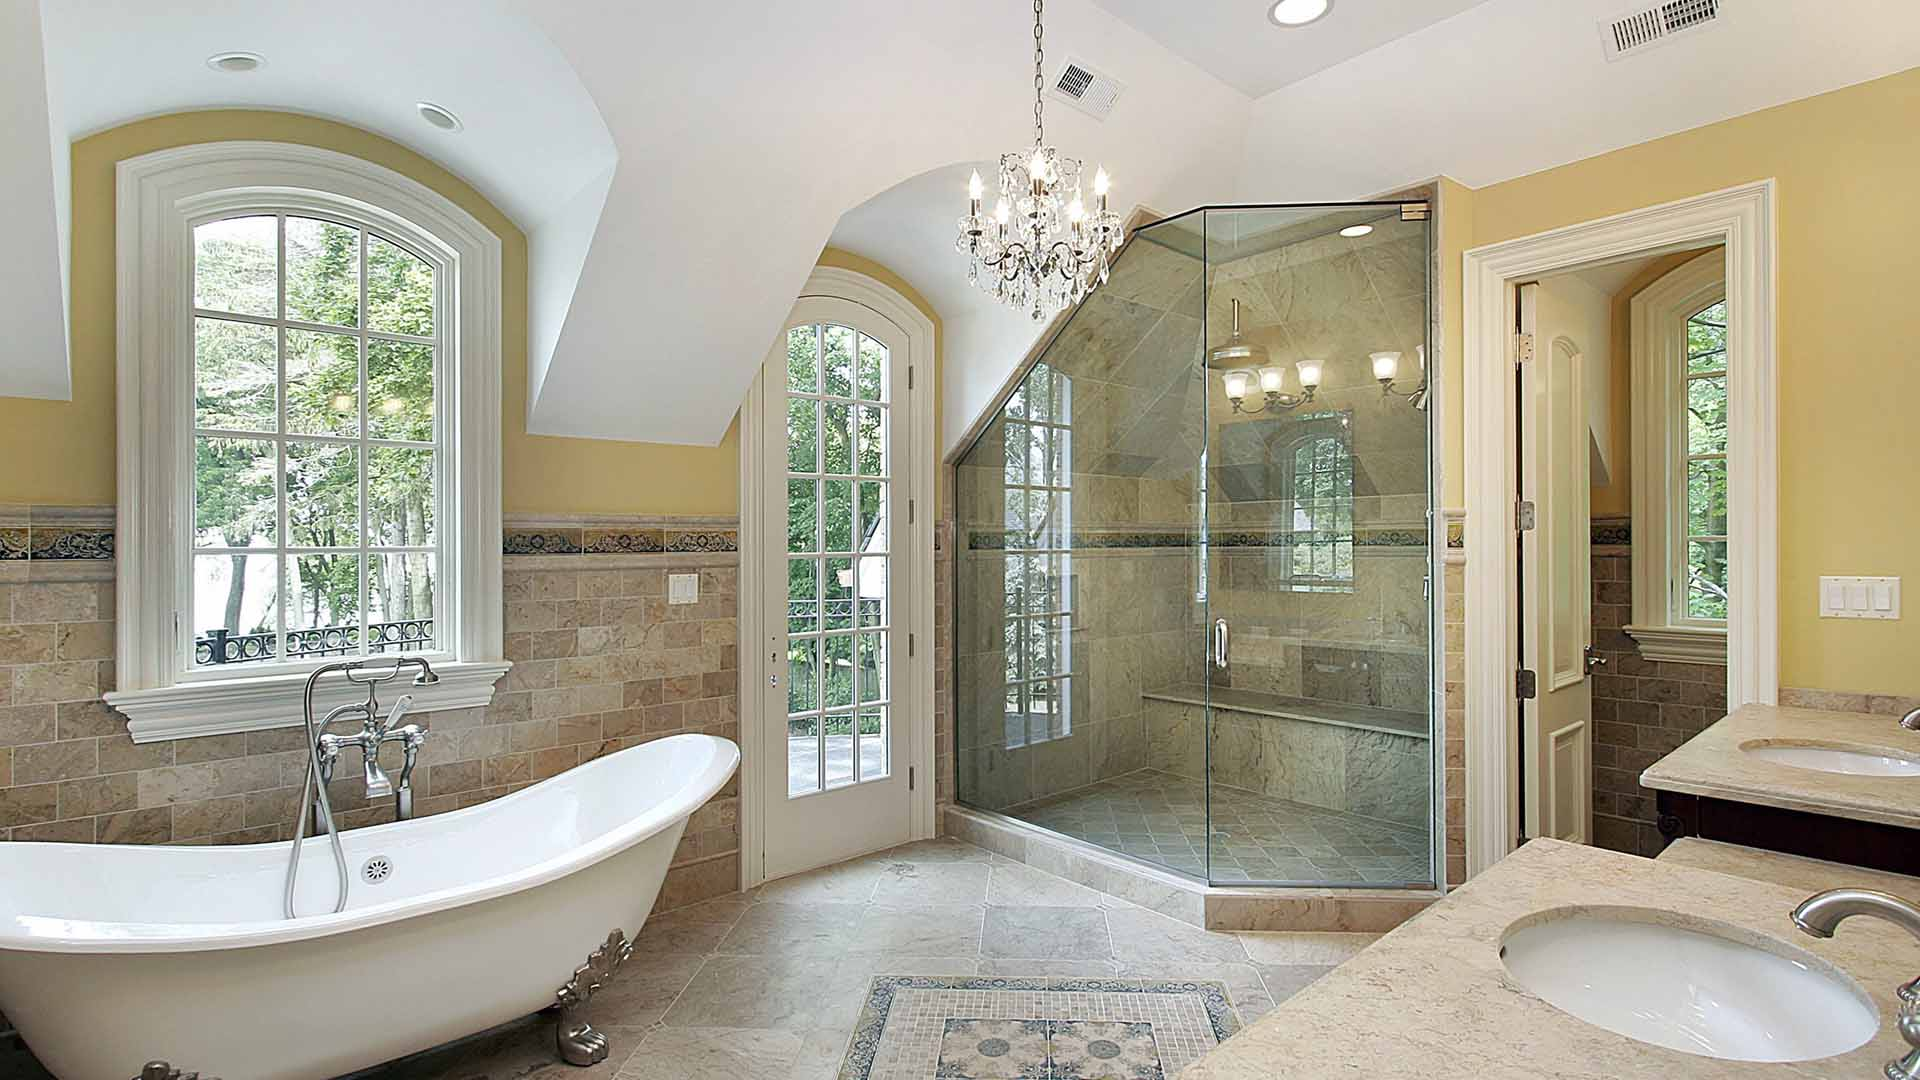 large master bath, design in floor tile, travertine floor tile, travertine wall tile, claw-foot tub, free standing tub filler, travertine counter tops, frameless shower glass, tile on bathroom walls, bathroom chandelier, shower with slope ceiling